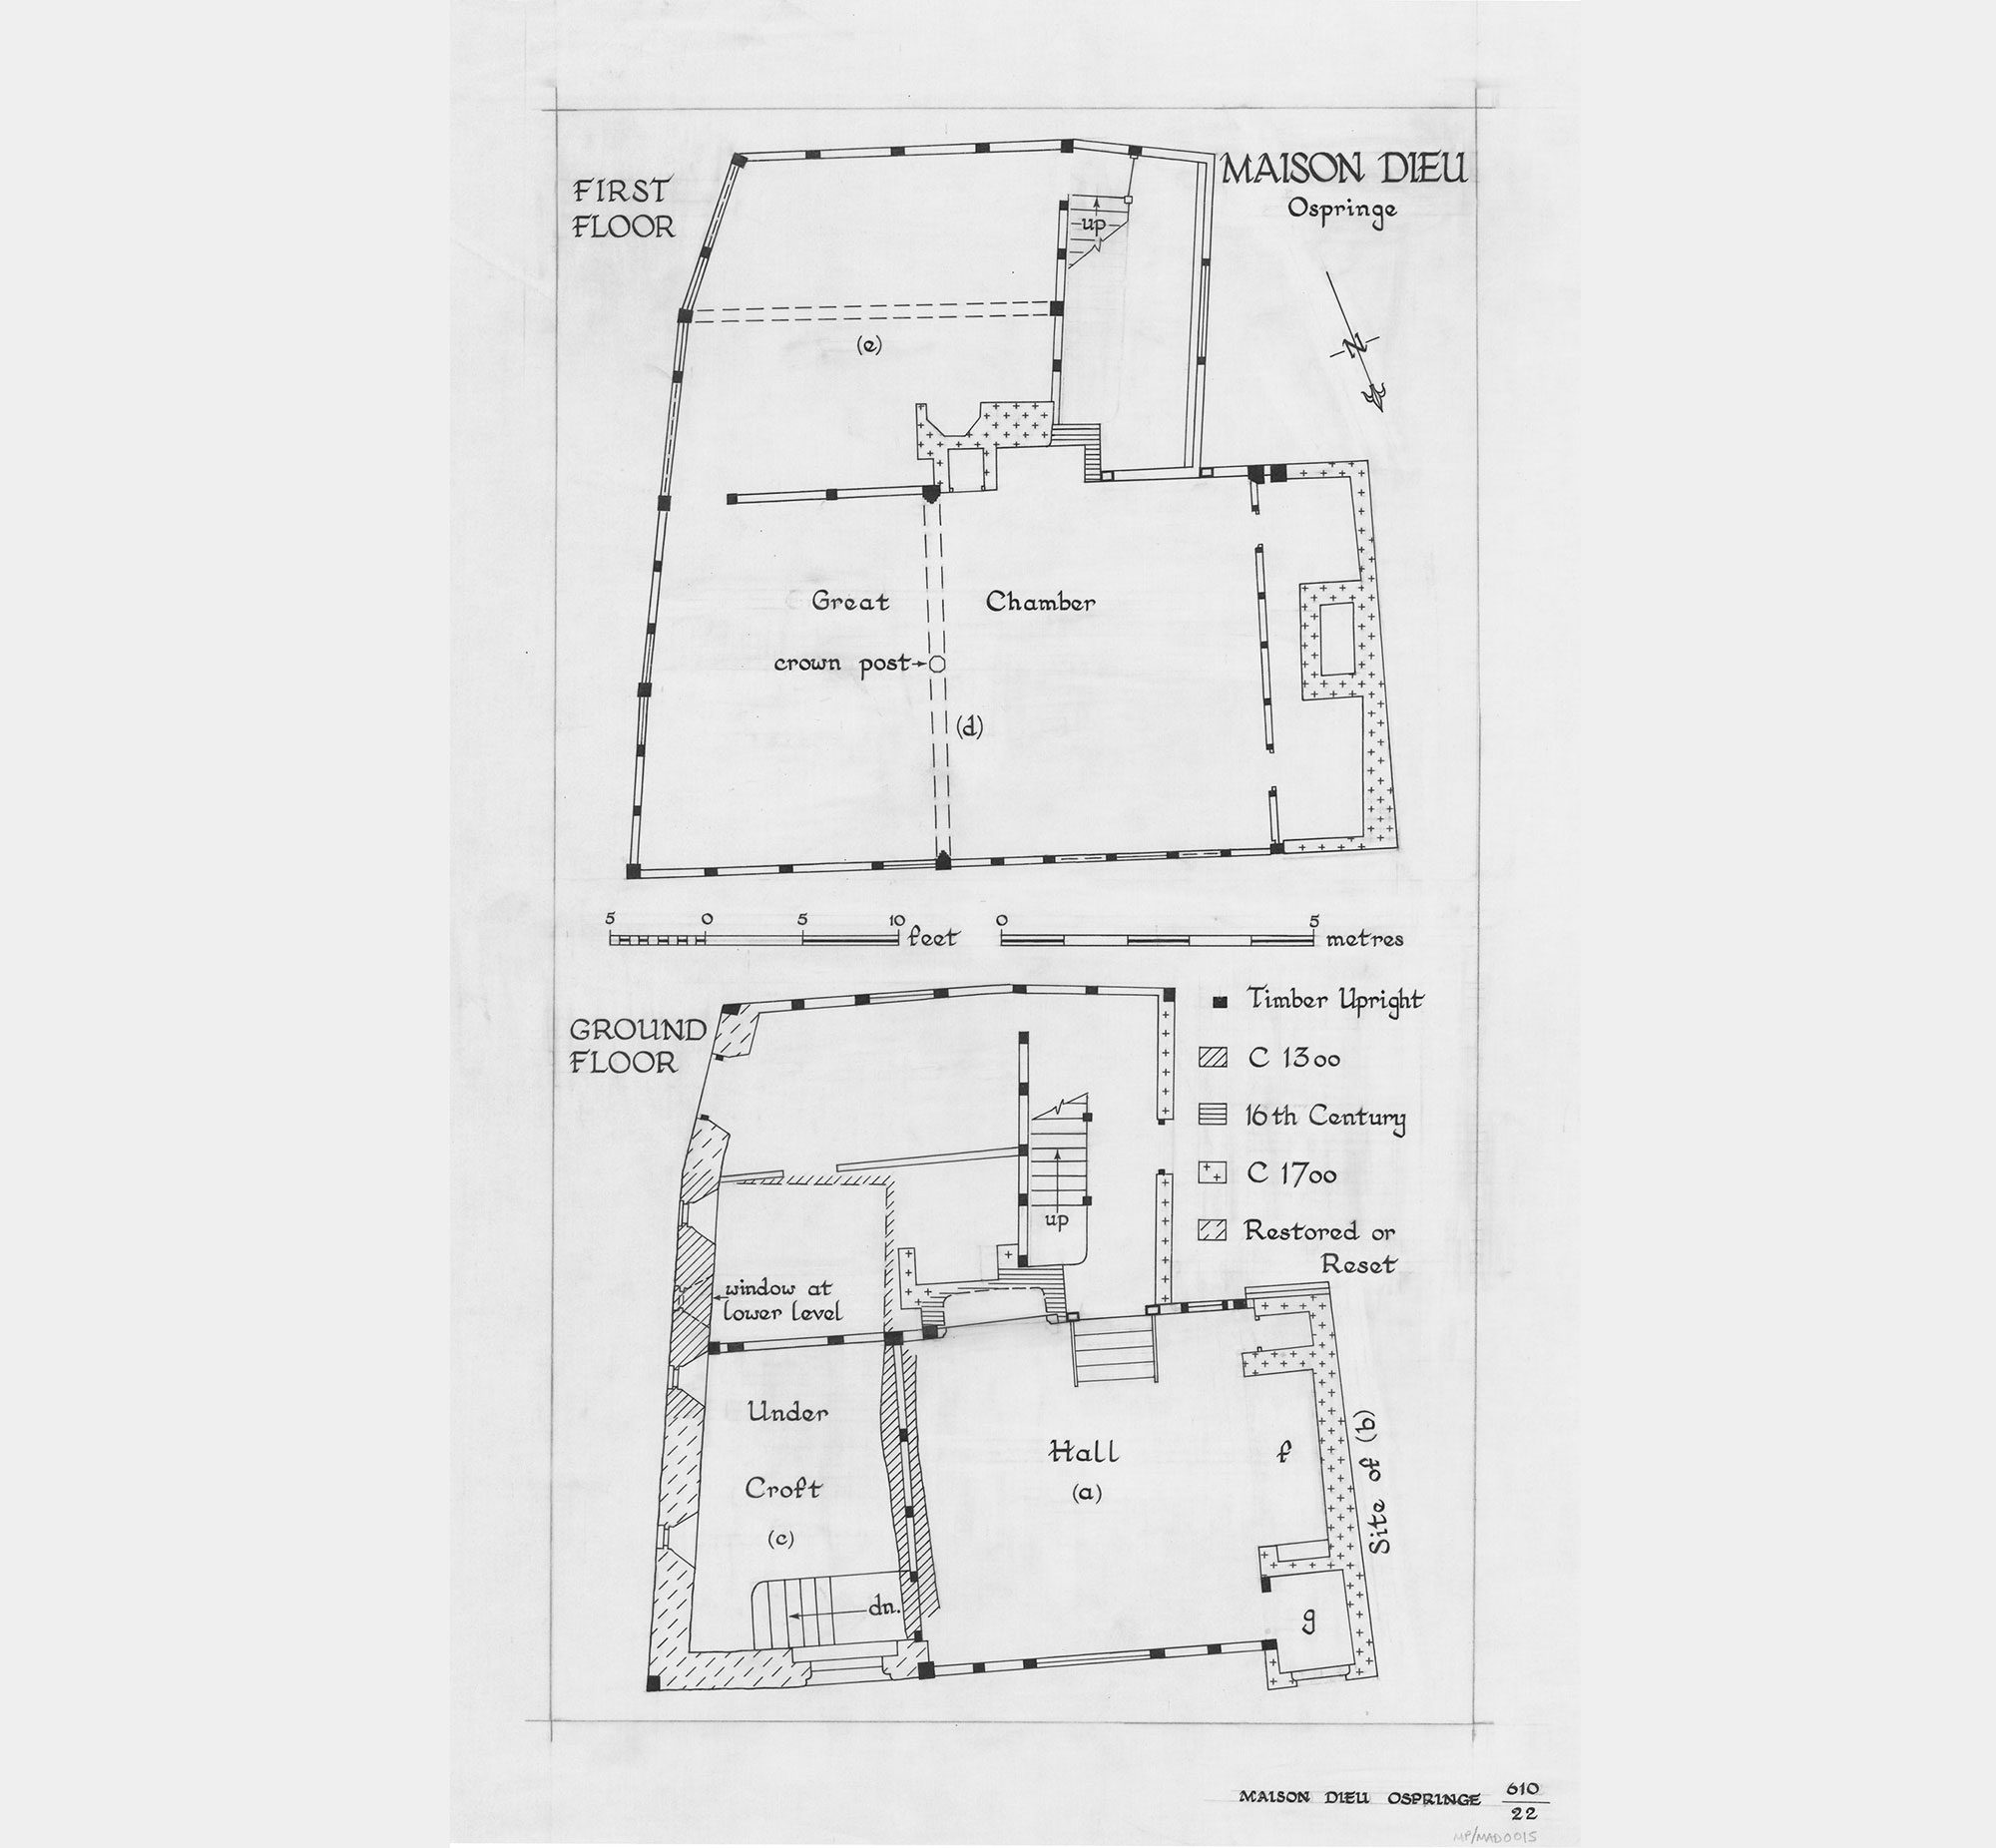 a plan of what remains of the monastery at maison dieu